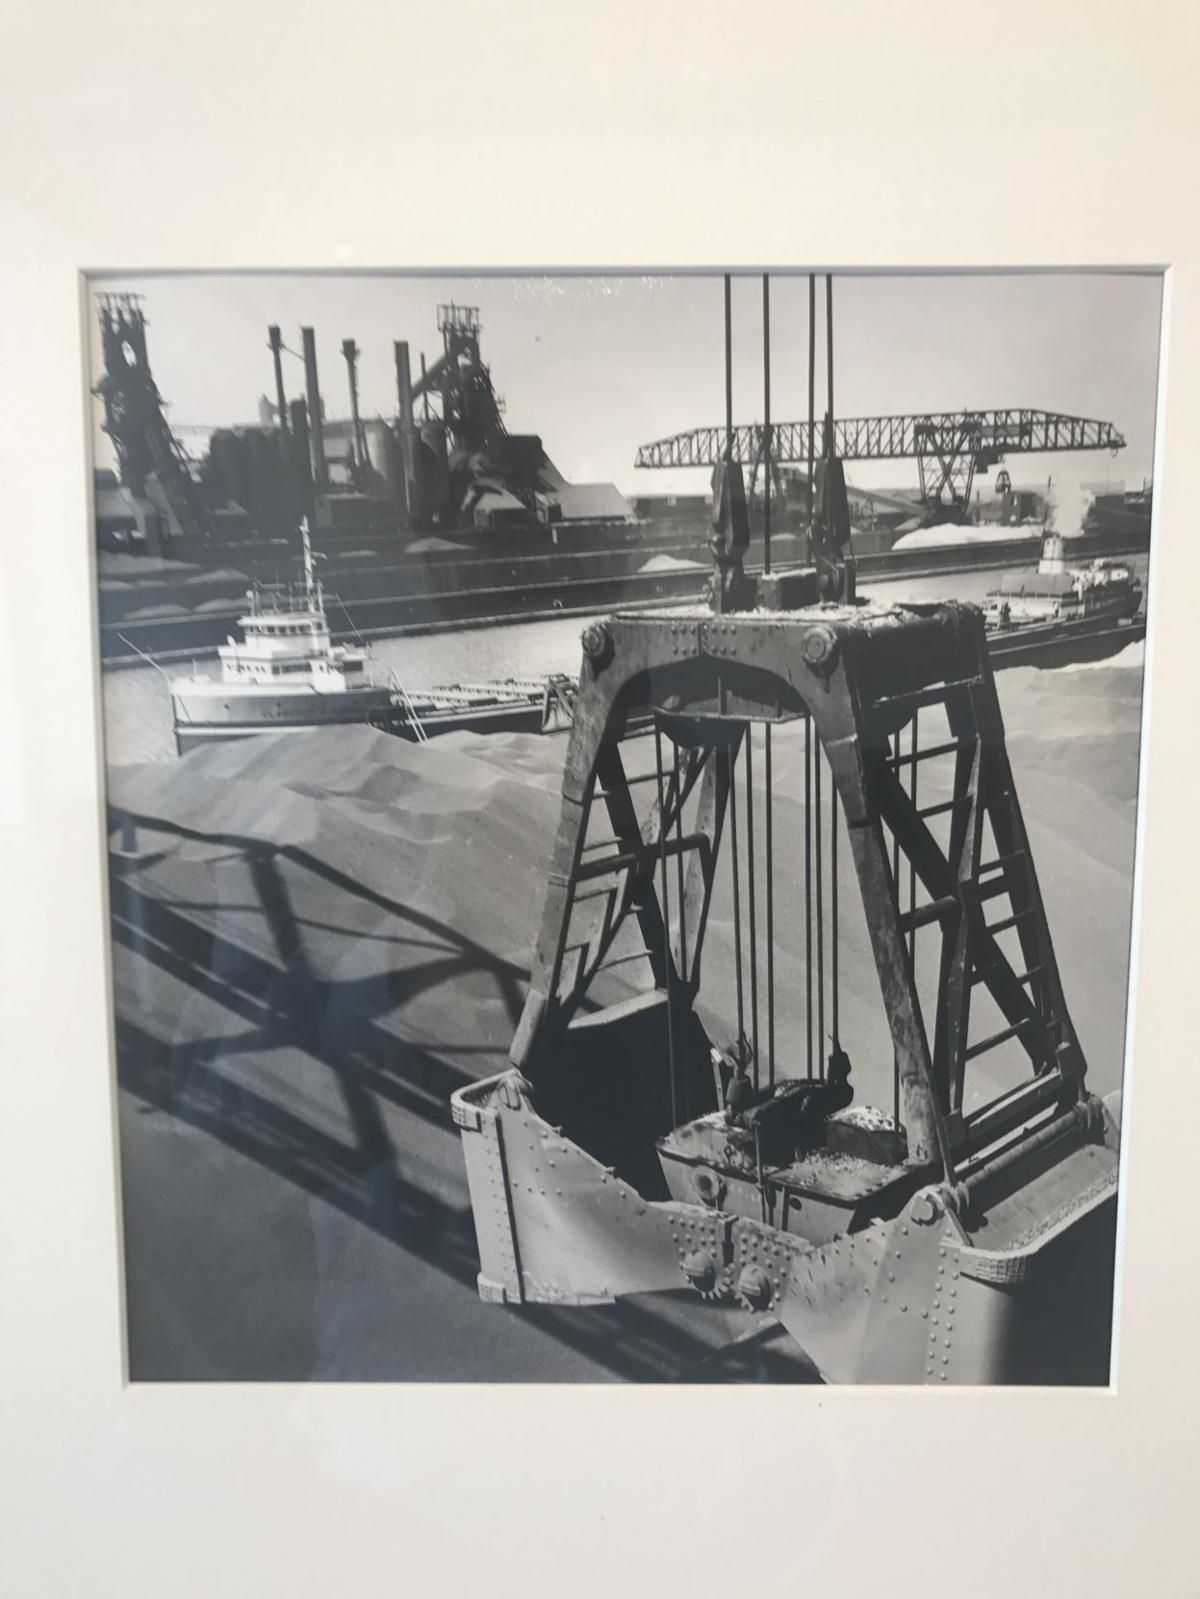 Steeltown USA exhibit showcases historic mill images